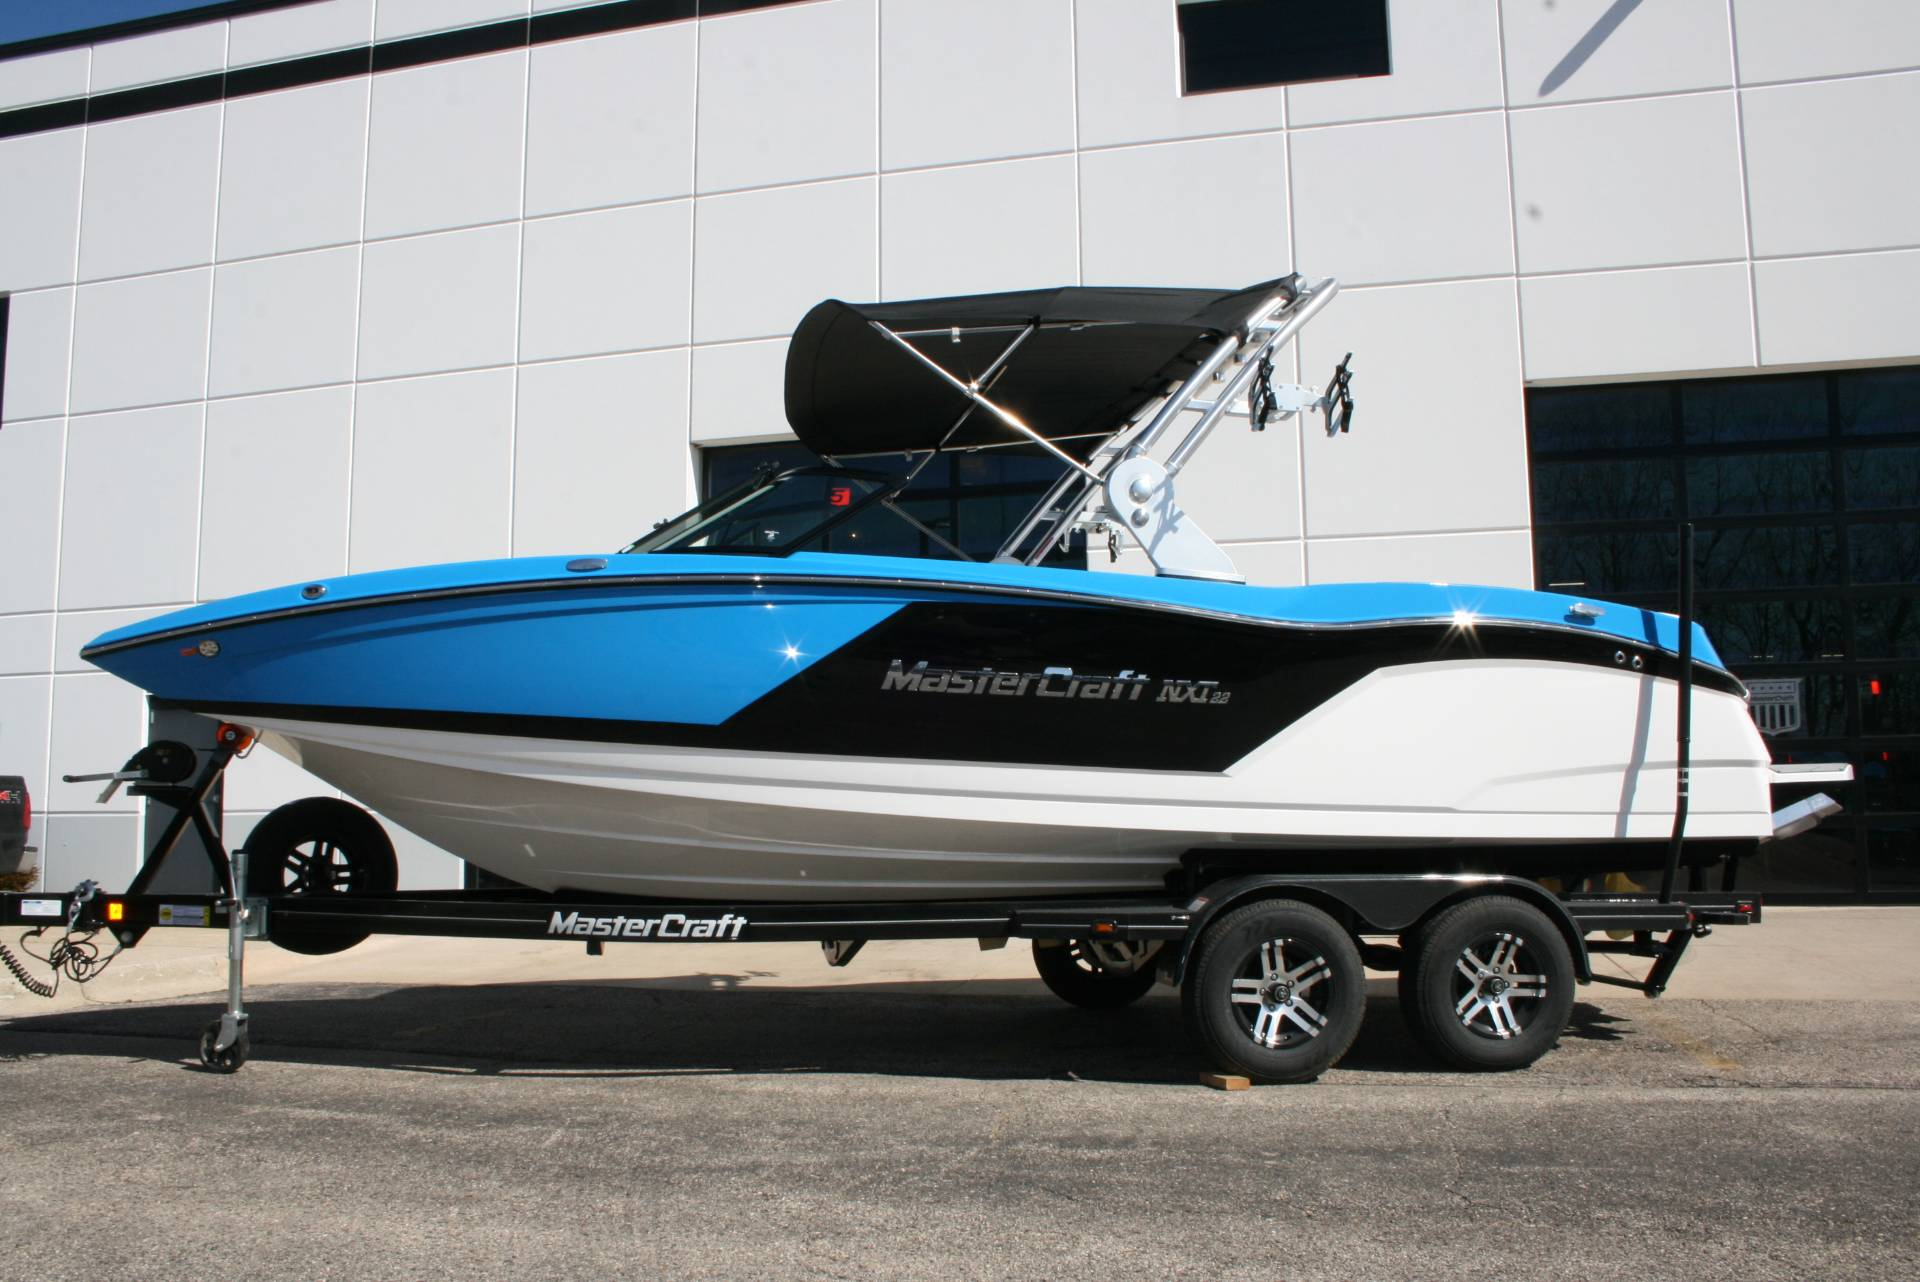 2018 Mastercraft NXT22 in Lake Zurich, Illinois